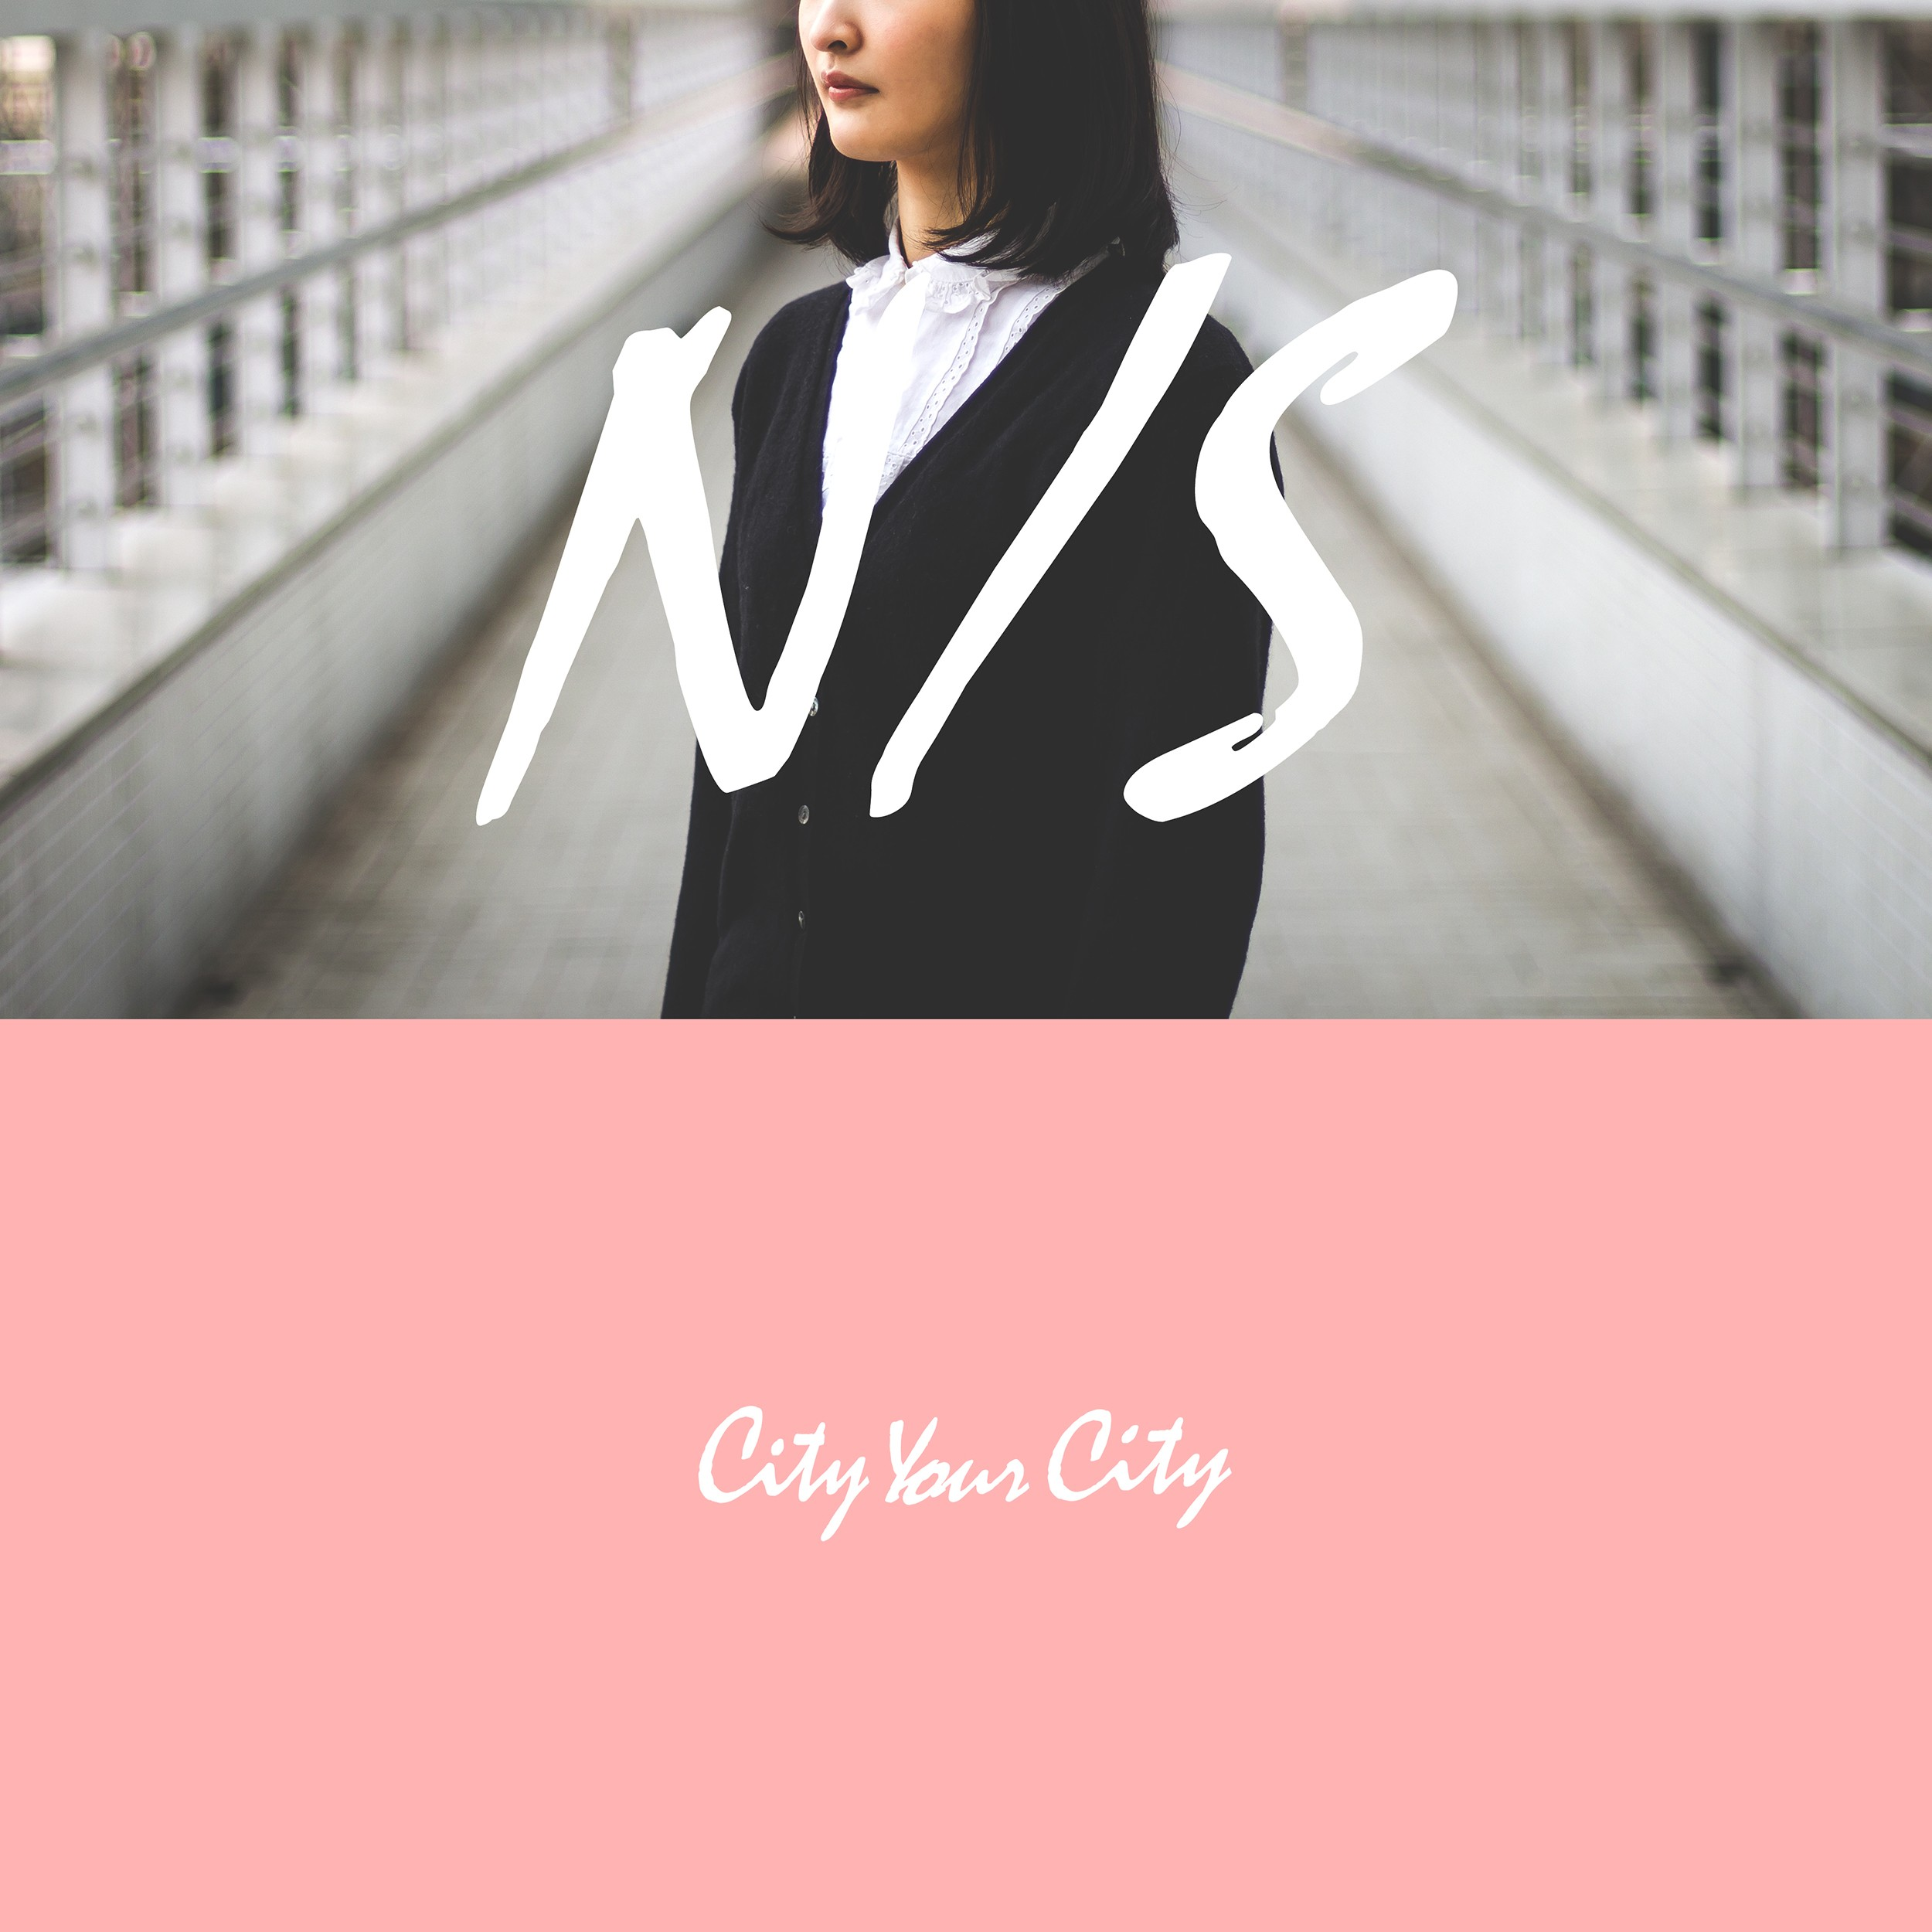 Image of N/S / City Your City